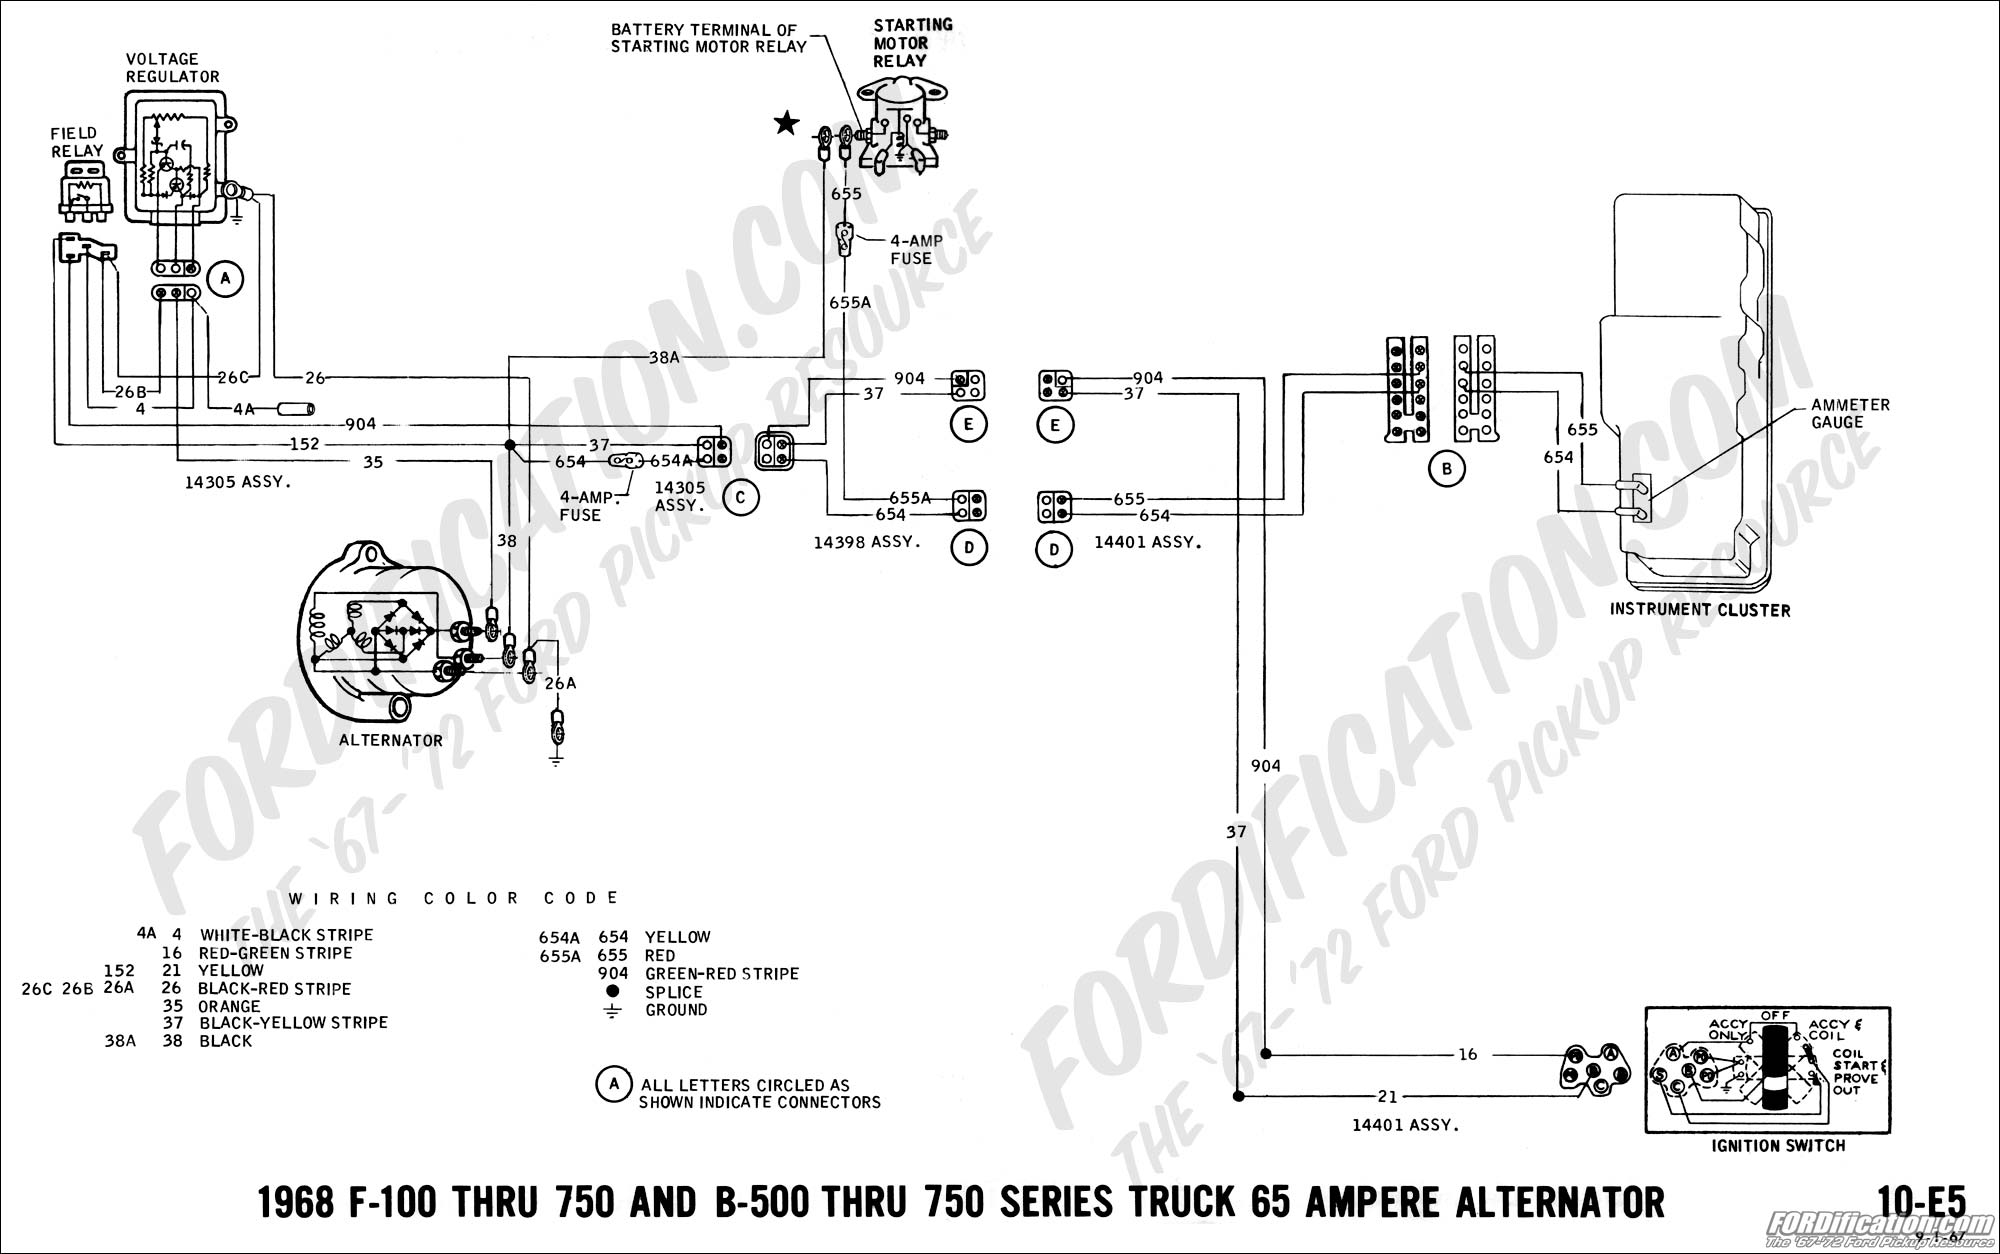 68 07 ford truck technical drawings and schematics section h wiring 68 mustang alternator wiring diagram at nearapp.co